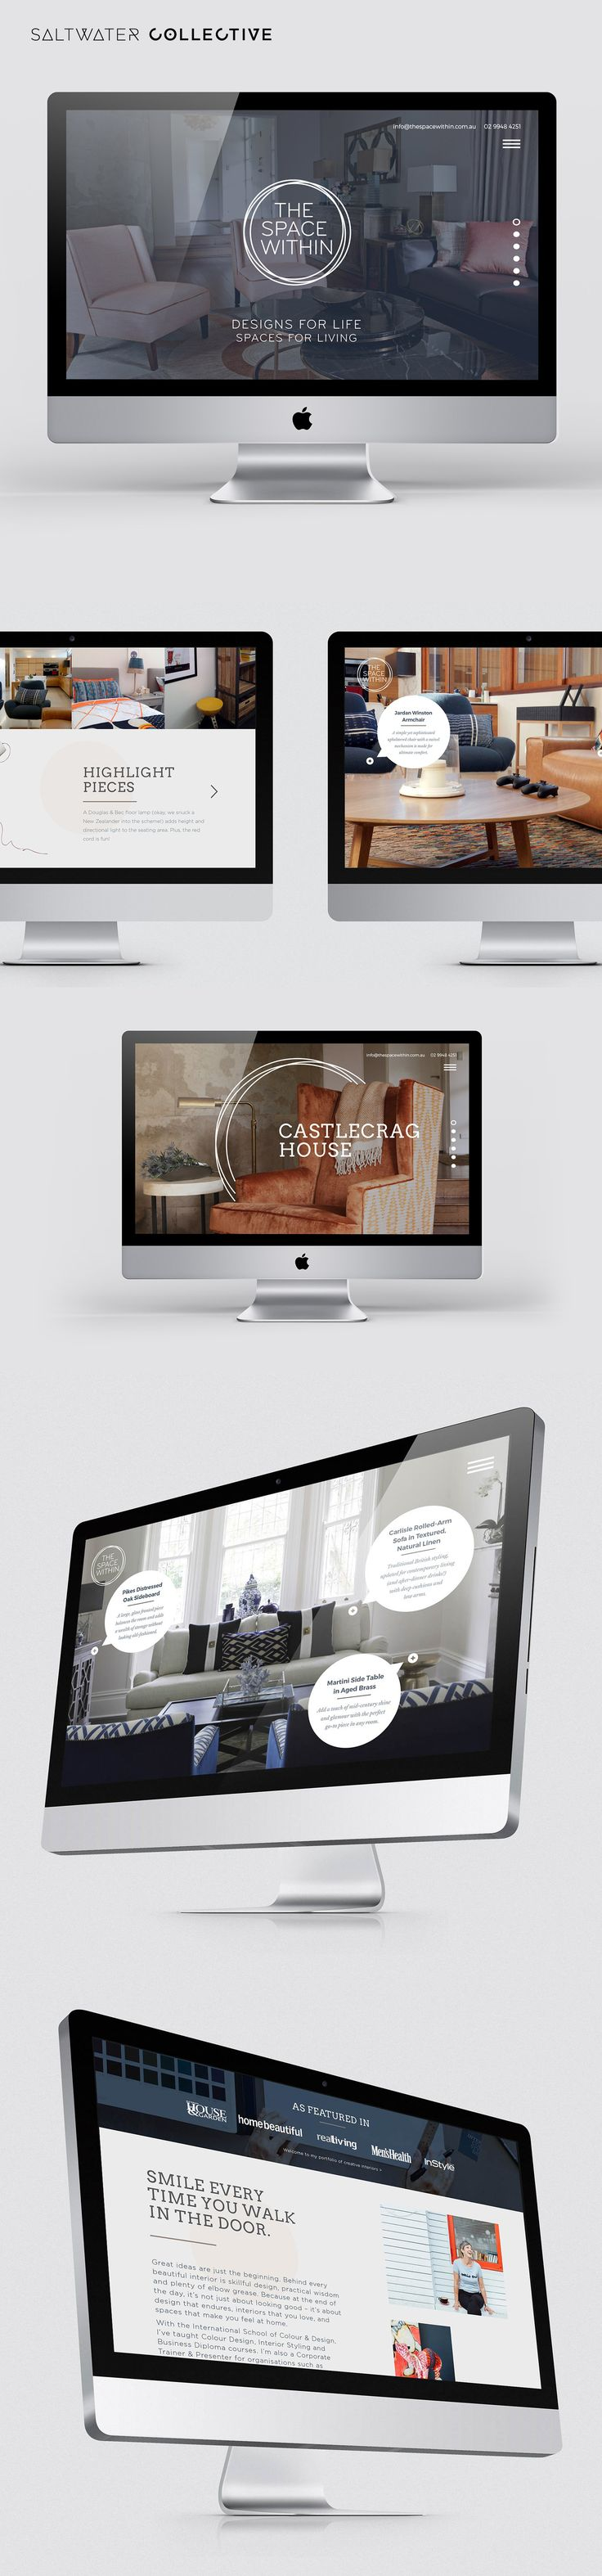 New website design and build for The Space Within